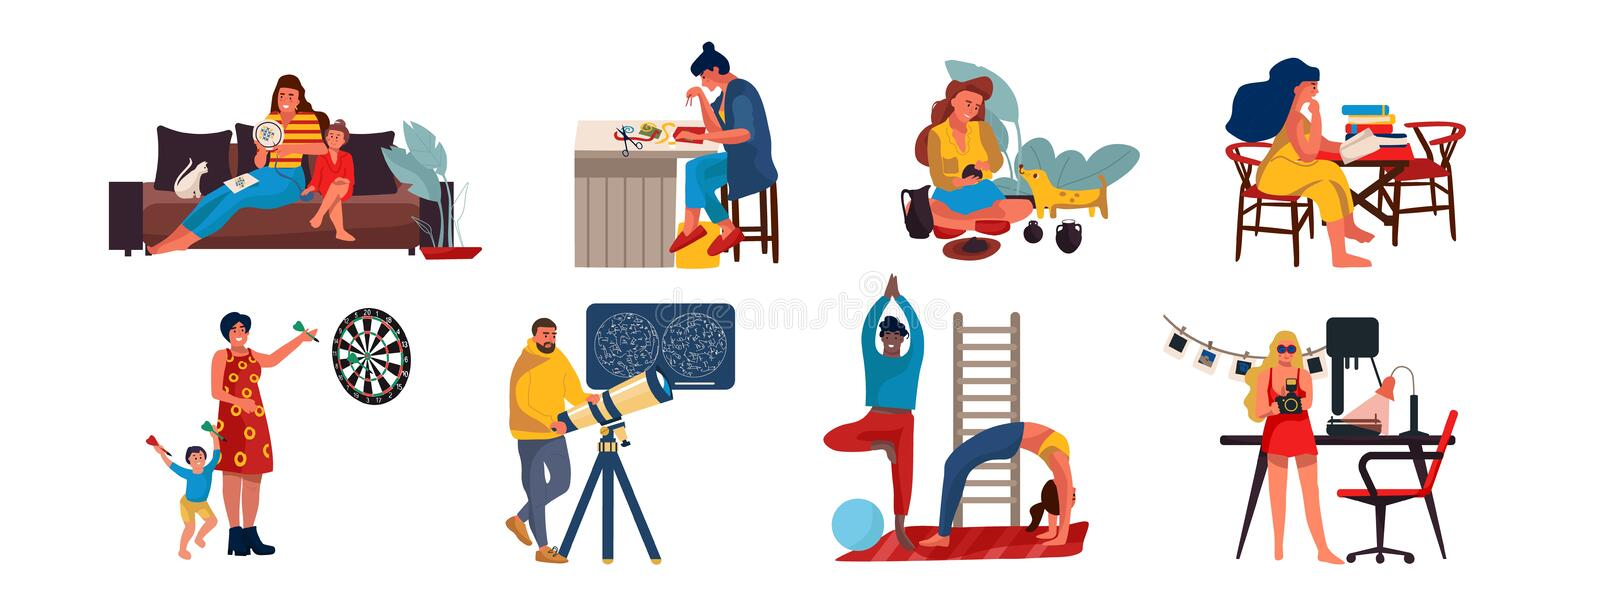 People at home. Cartoon characters relaxing and doing home activities, listening music, cooking reading and playing. Vector illustrations weekend relax with stock illustration